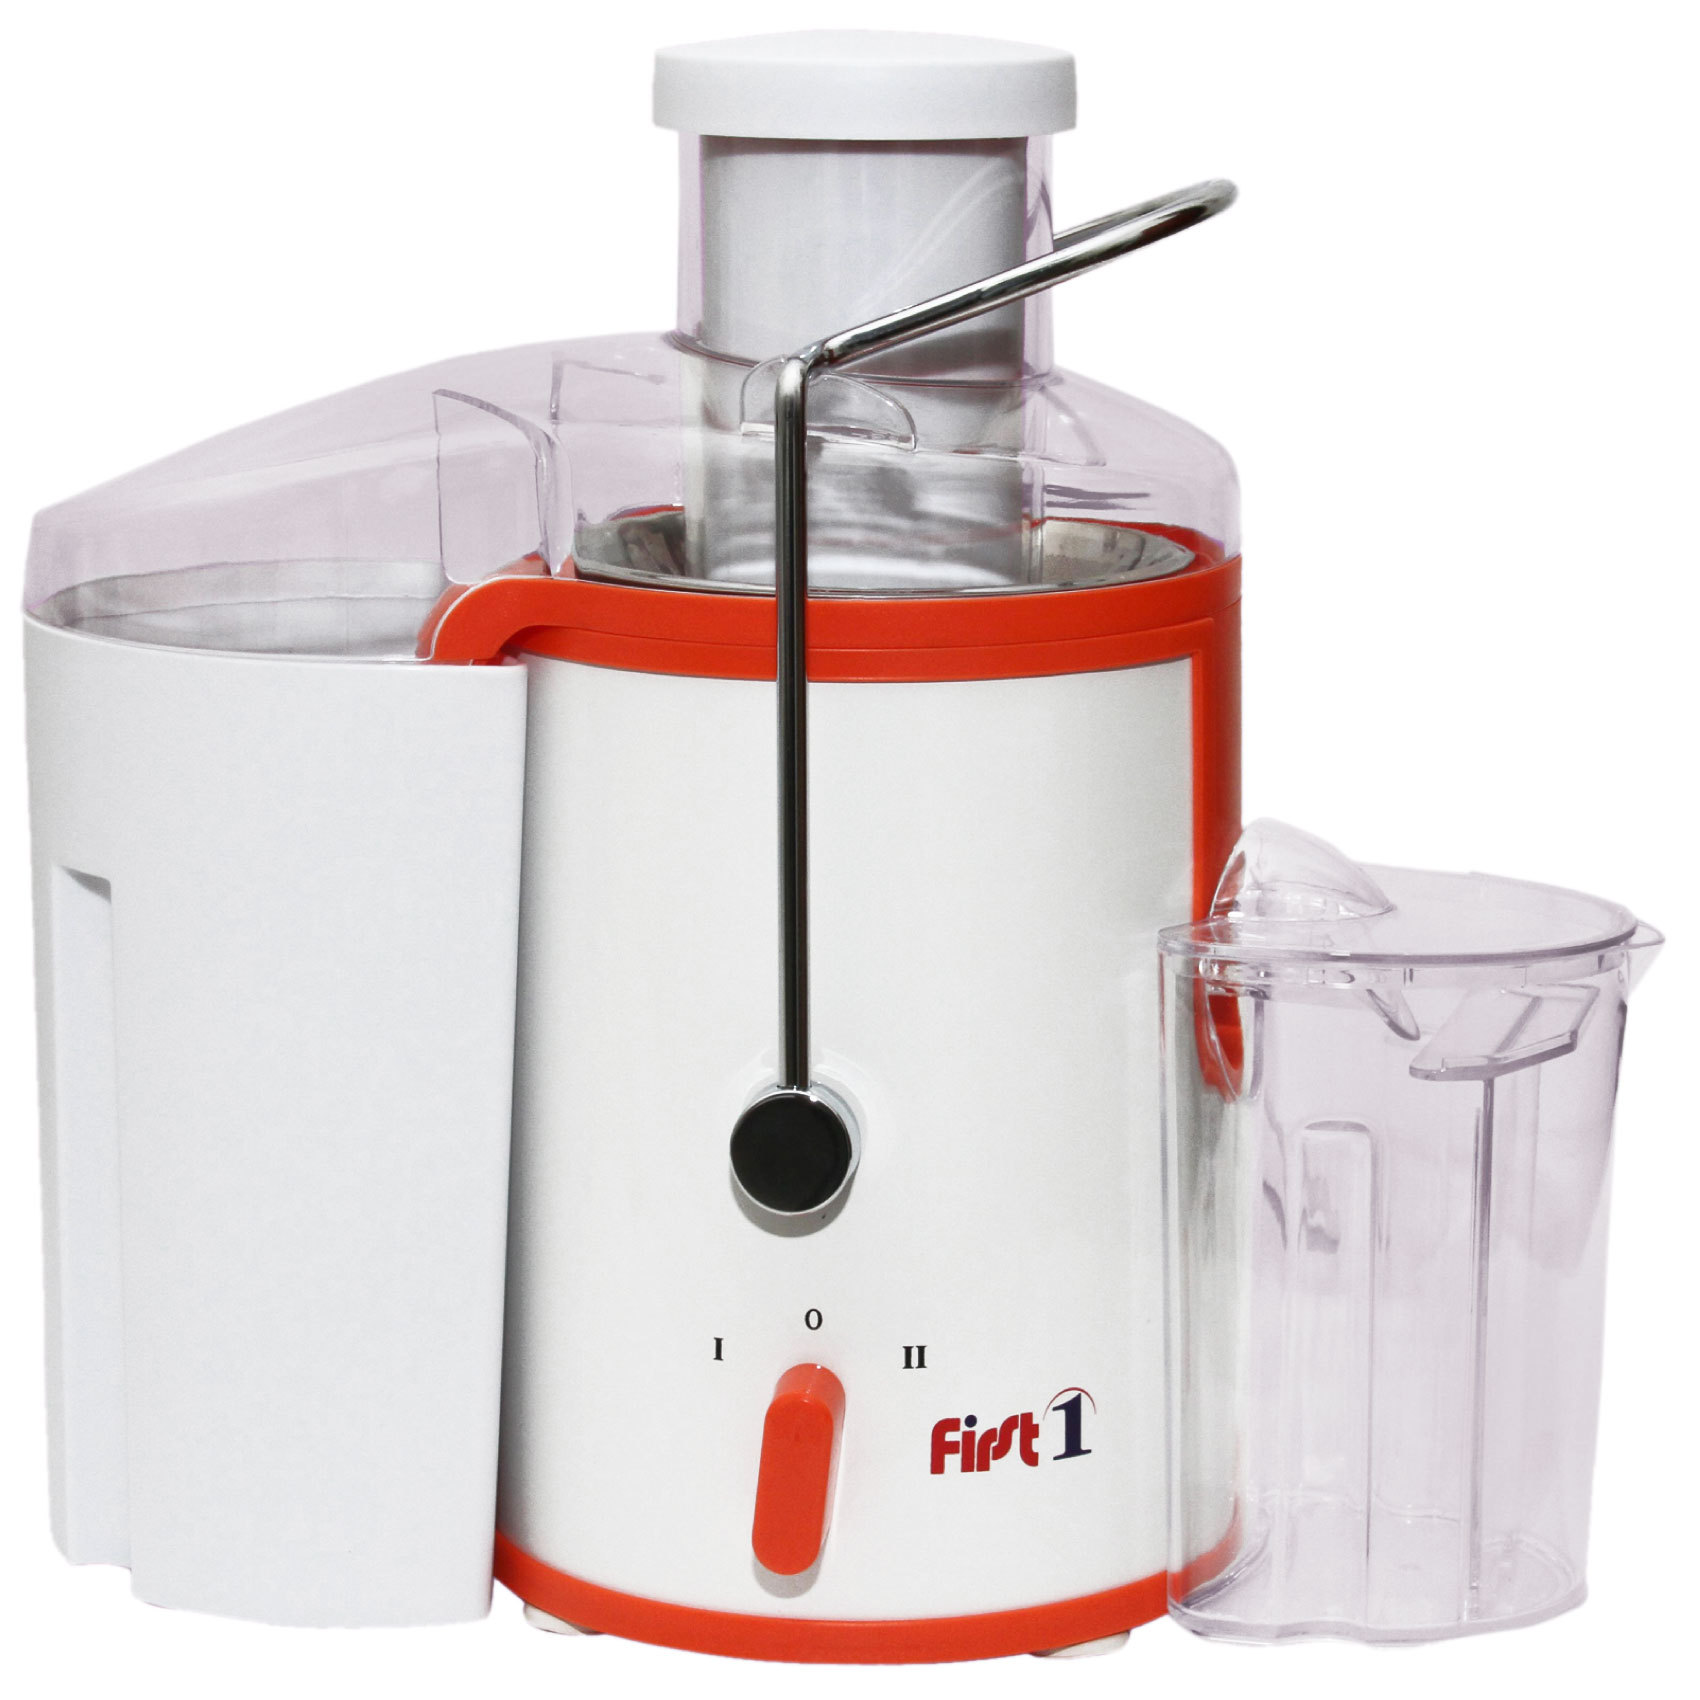 FIRST1 J-EXTRACTOR FJE-936